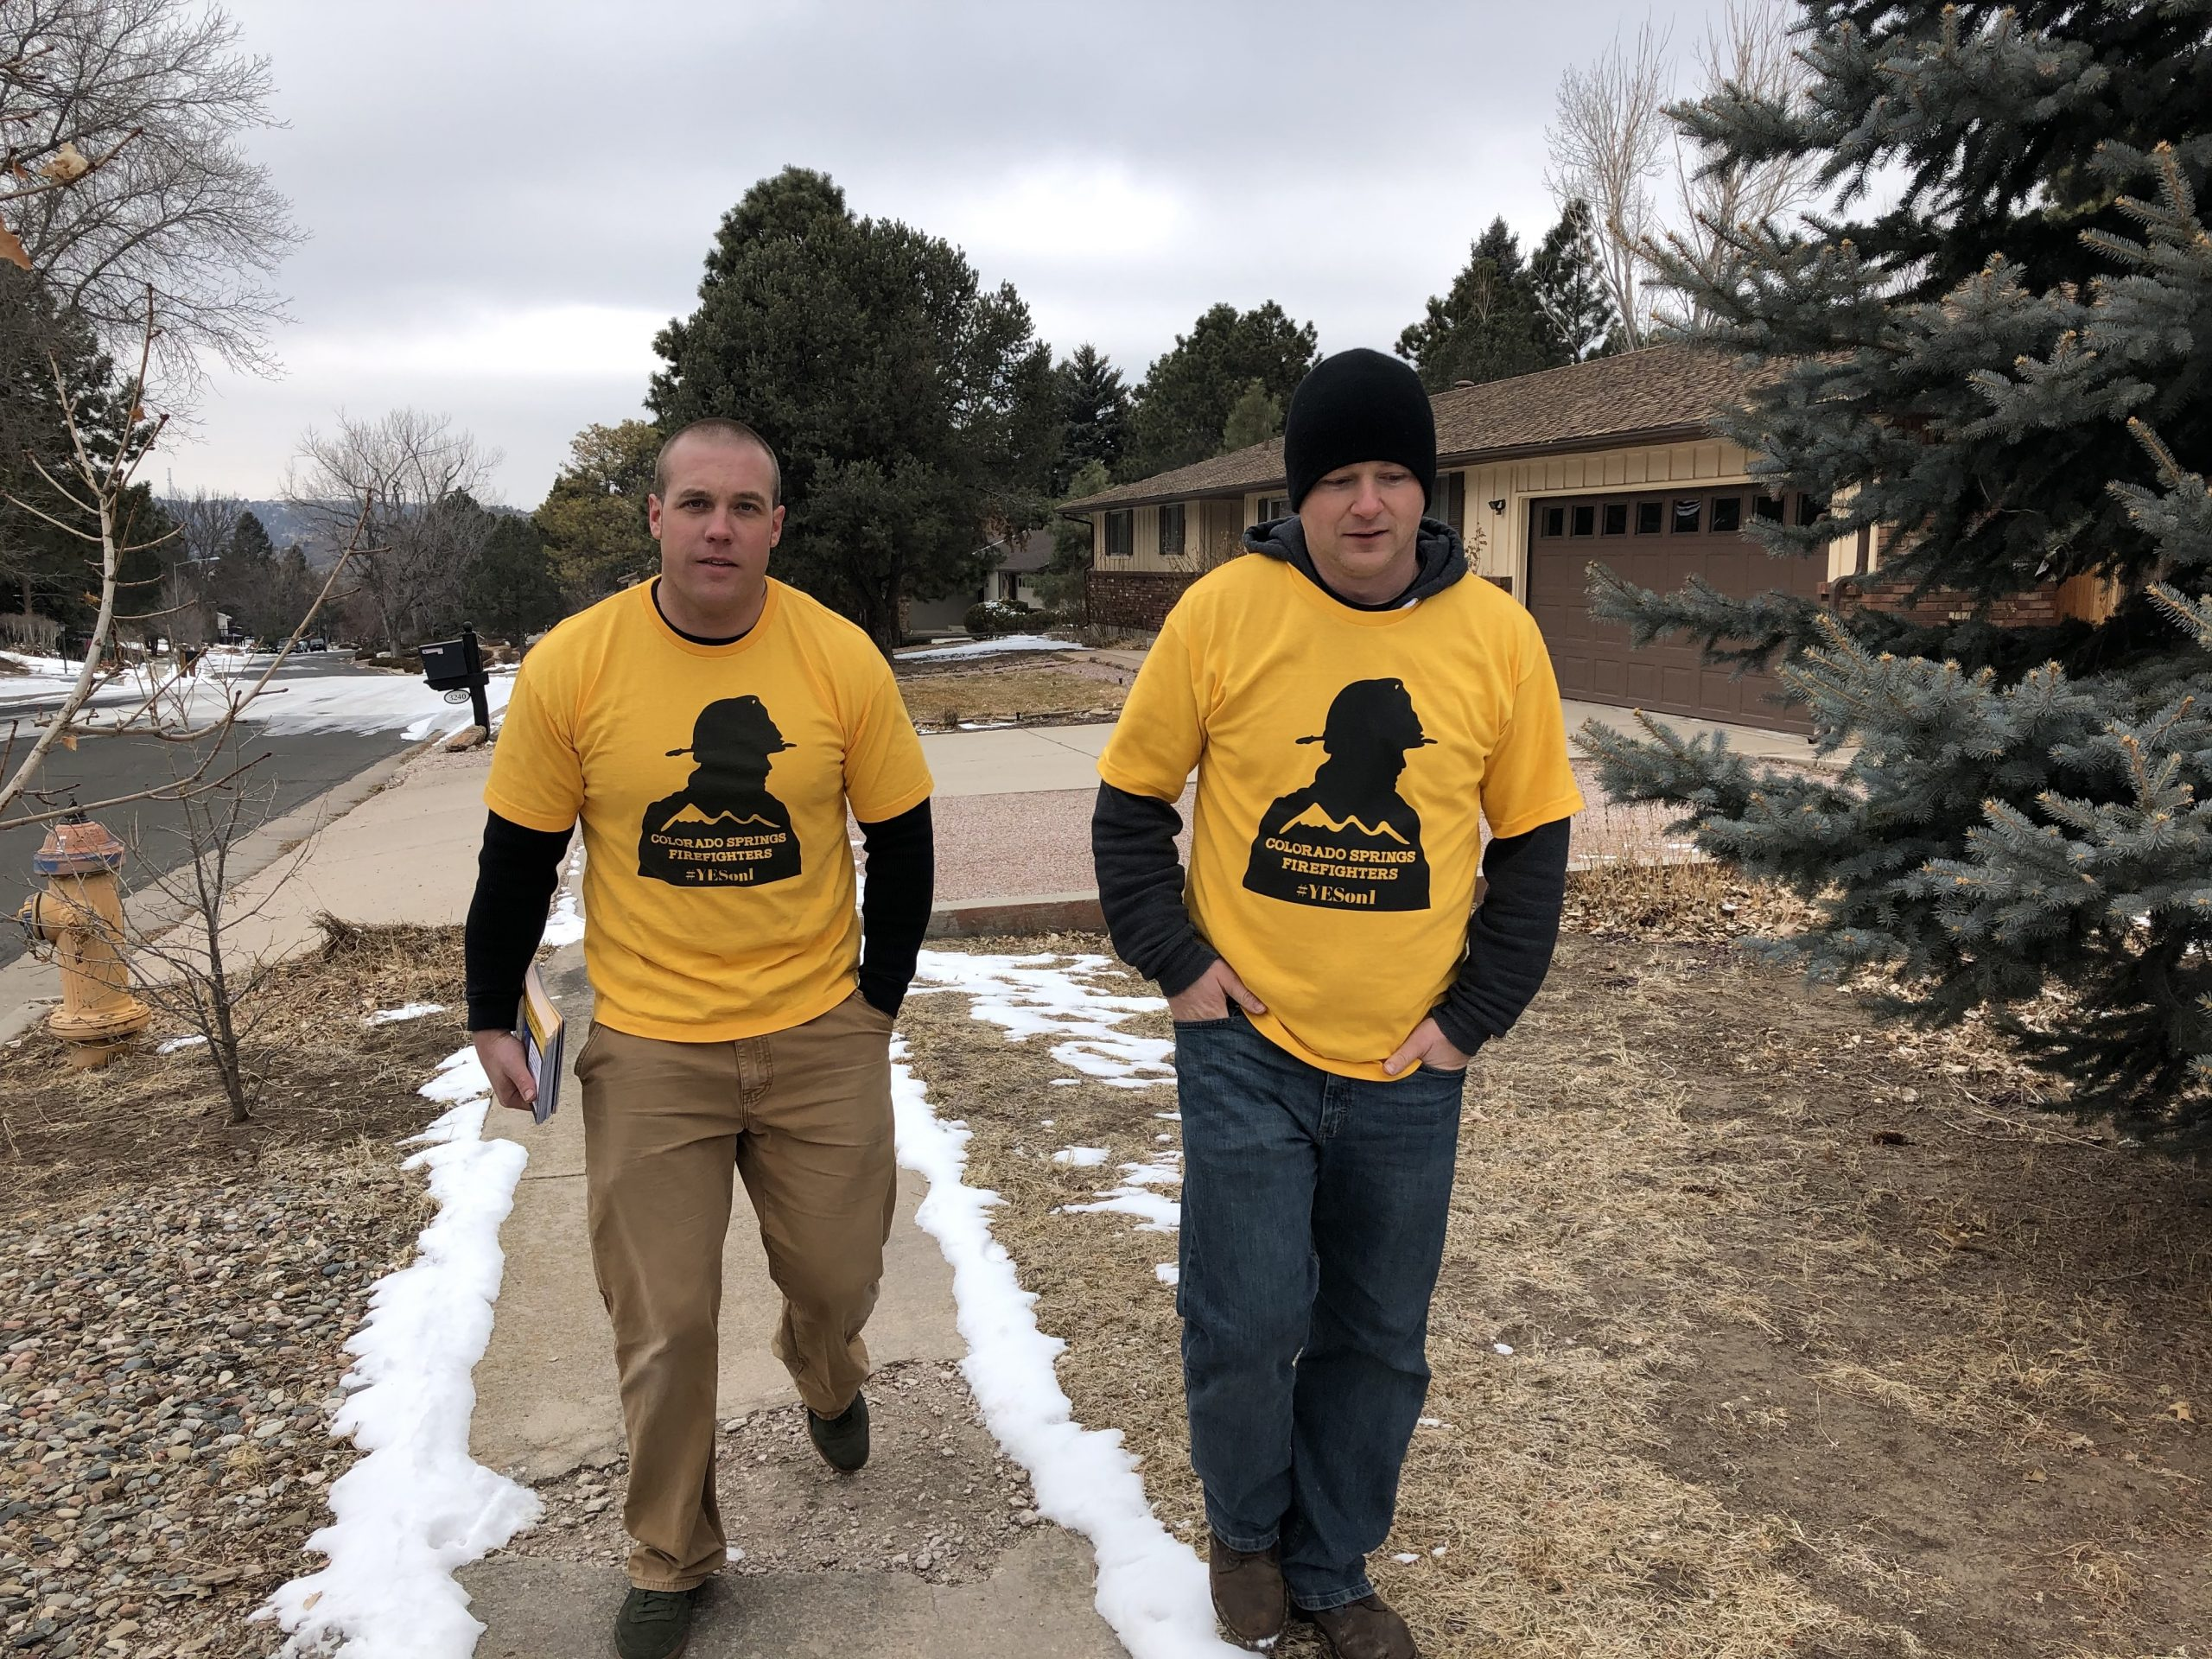 Jason Jones (left) and John Giacoma (right) canvass a Colorado Springs neighborhood in support of Issue 1, which would give Colorado Springs firefighters a collective bargaining agreement with the city.